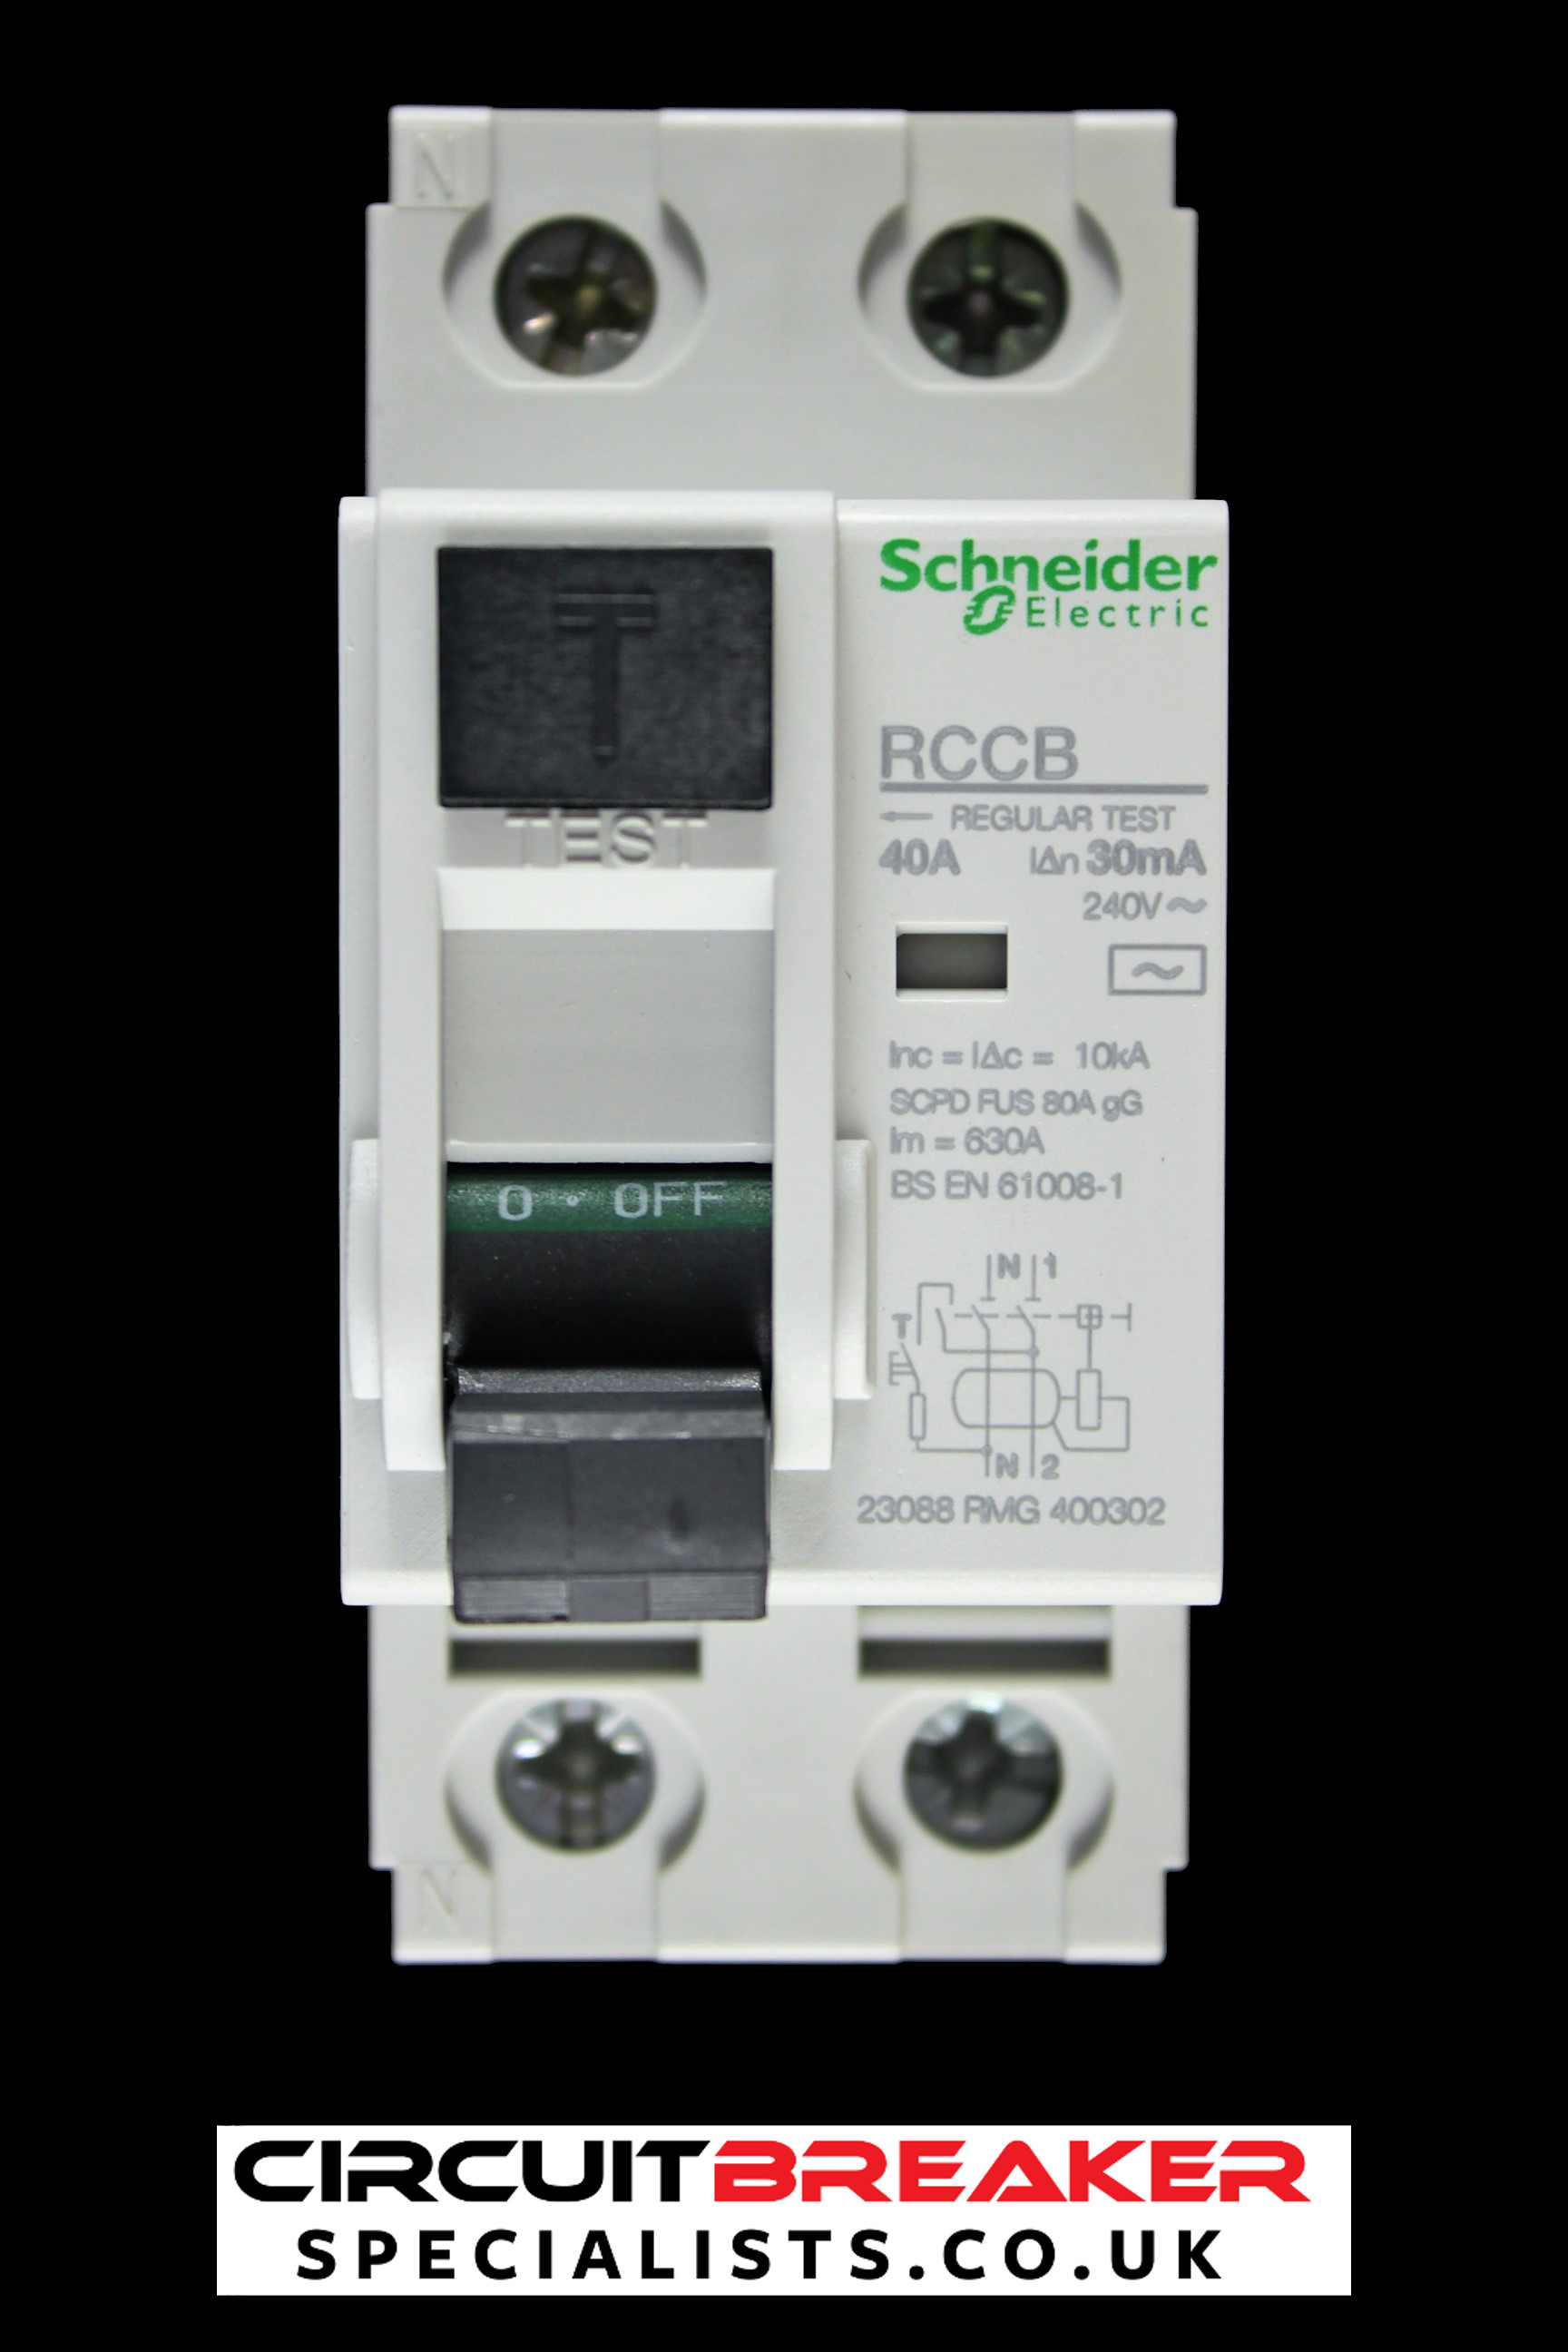 SCHNEIDER ELECTRIC 40 AMP 10kA 30mA DOUBLE POLE RCCB RCD 23088 RMG 400302